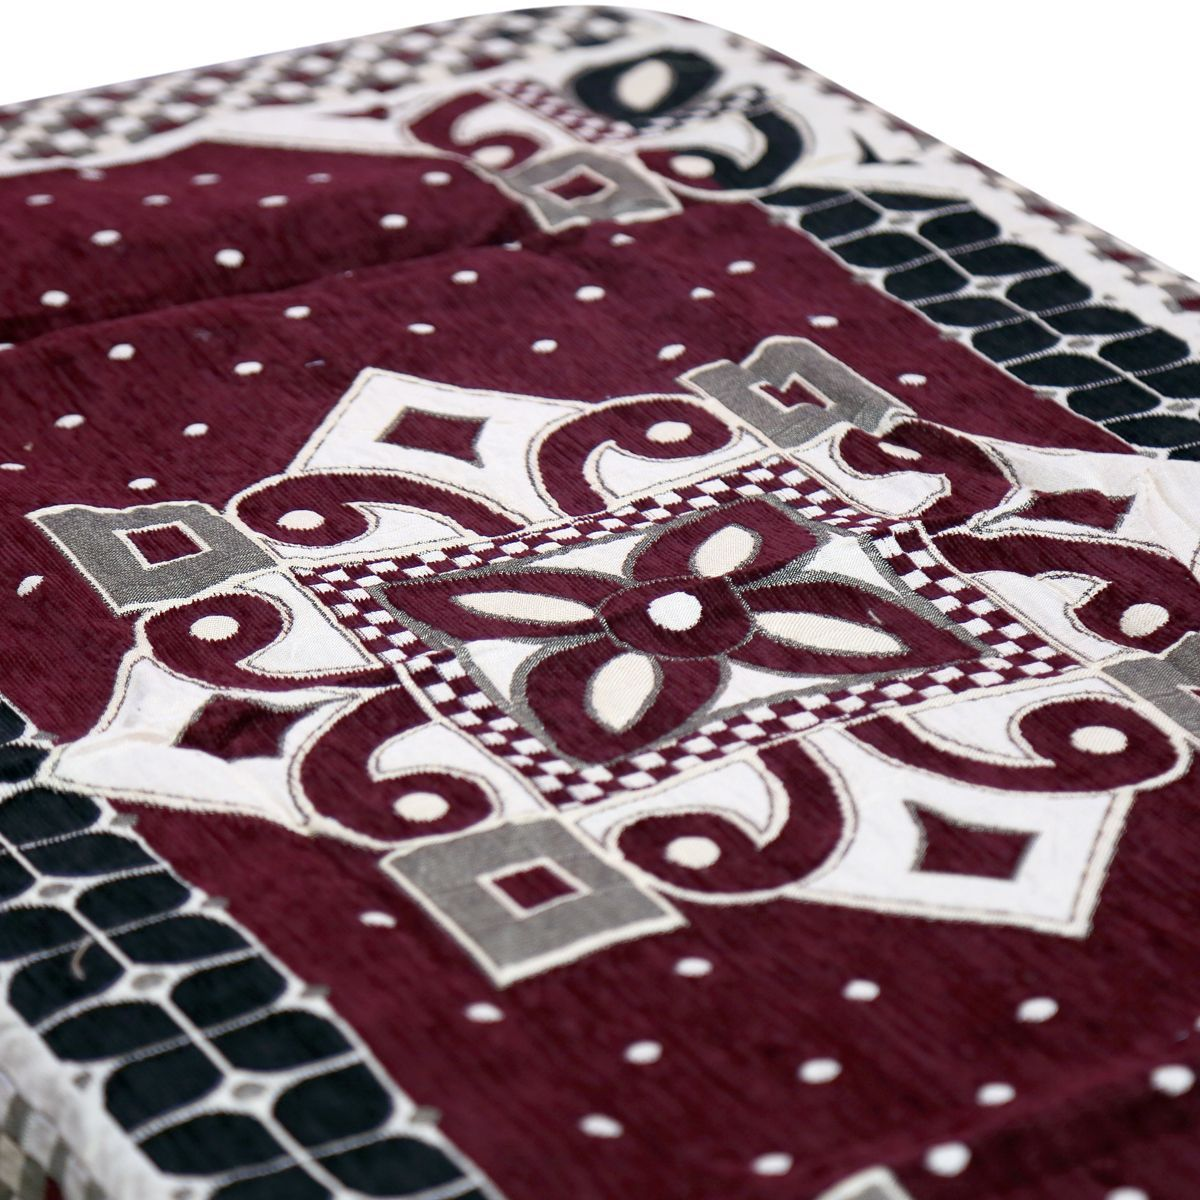 Kuber Industries™ Center Table Cover Maroon Cotton Fabric in Floral Design 40*60 Inches (Exclusive Design)